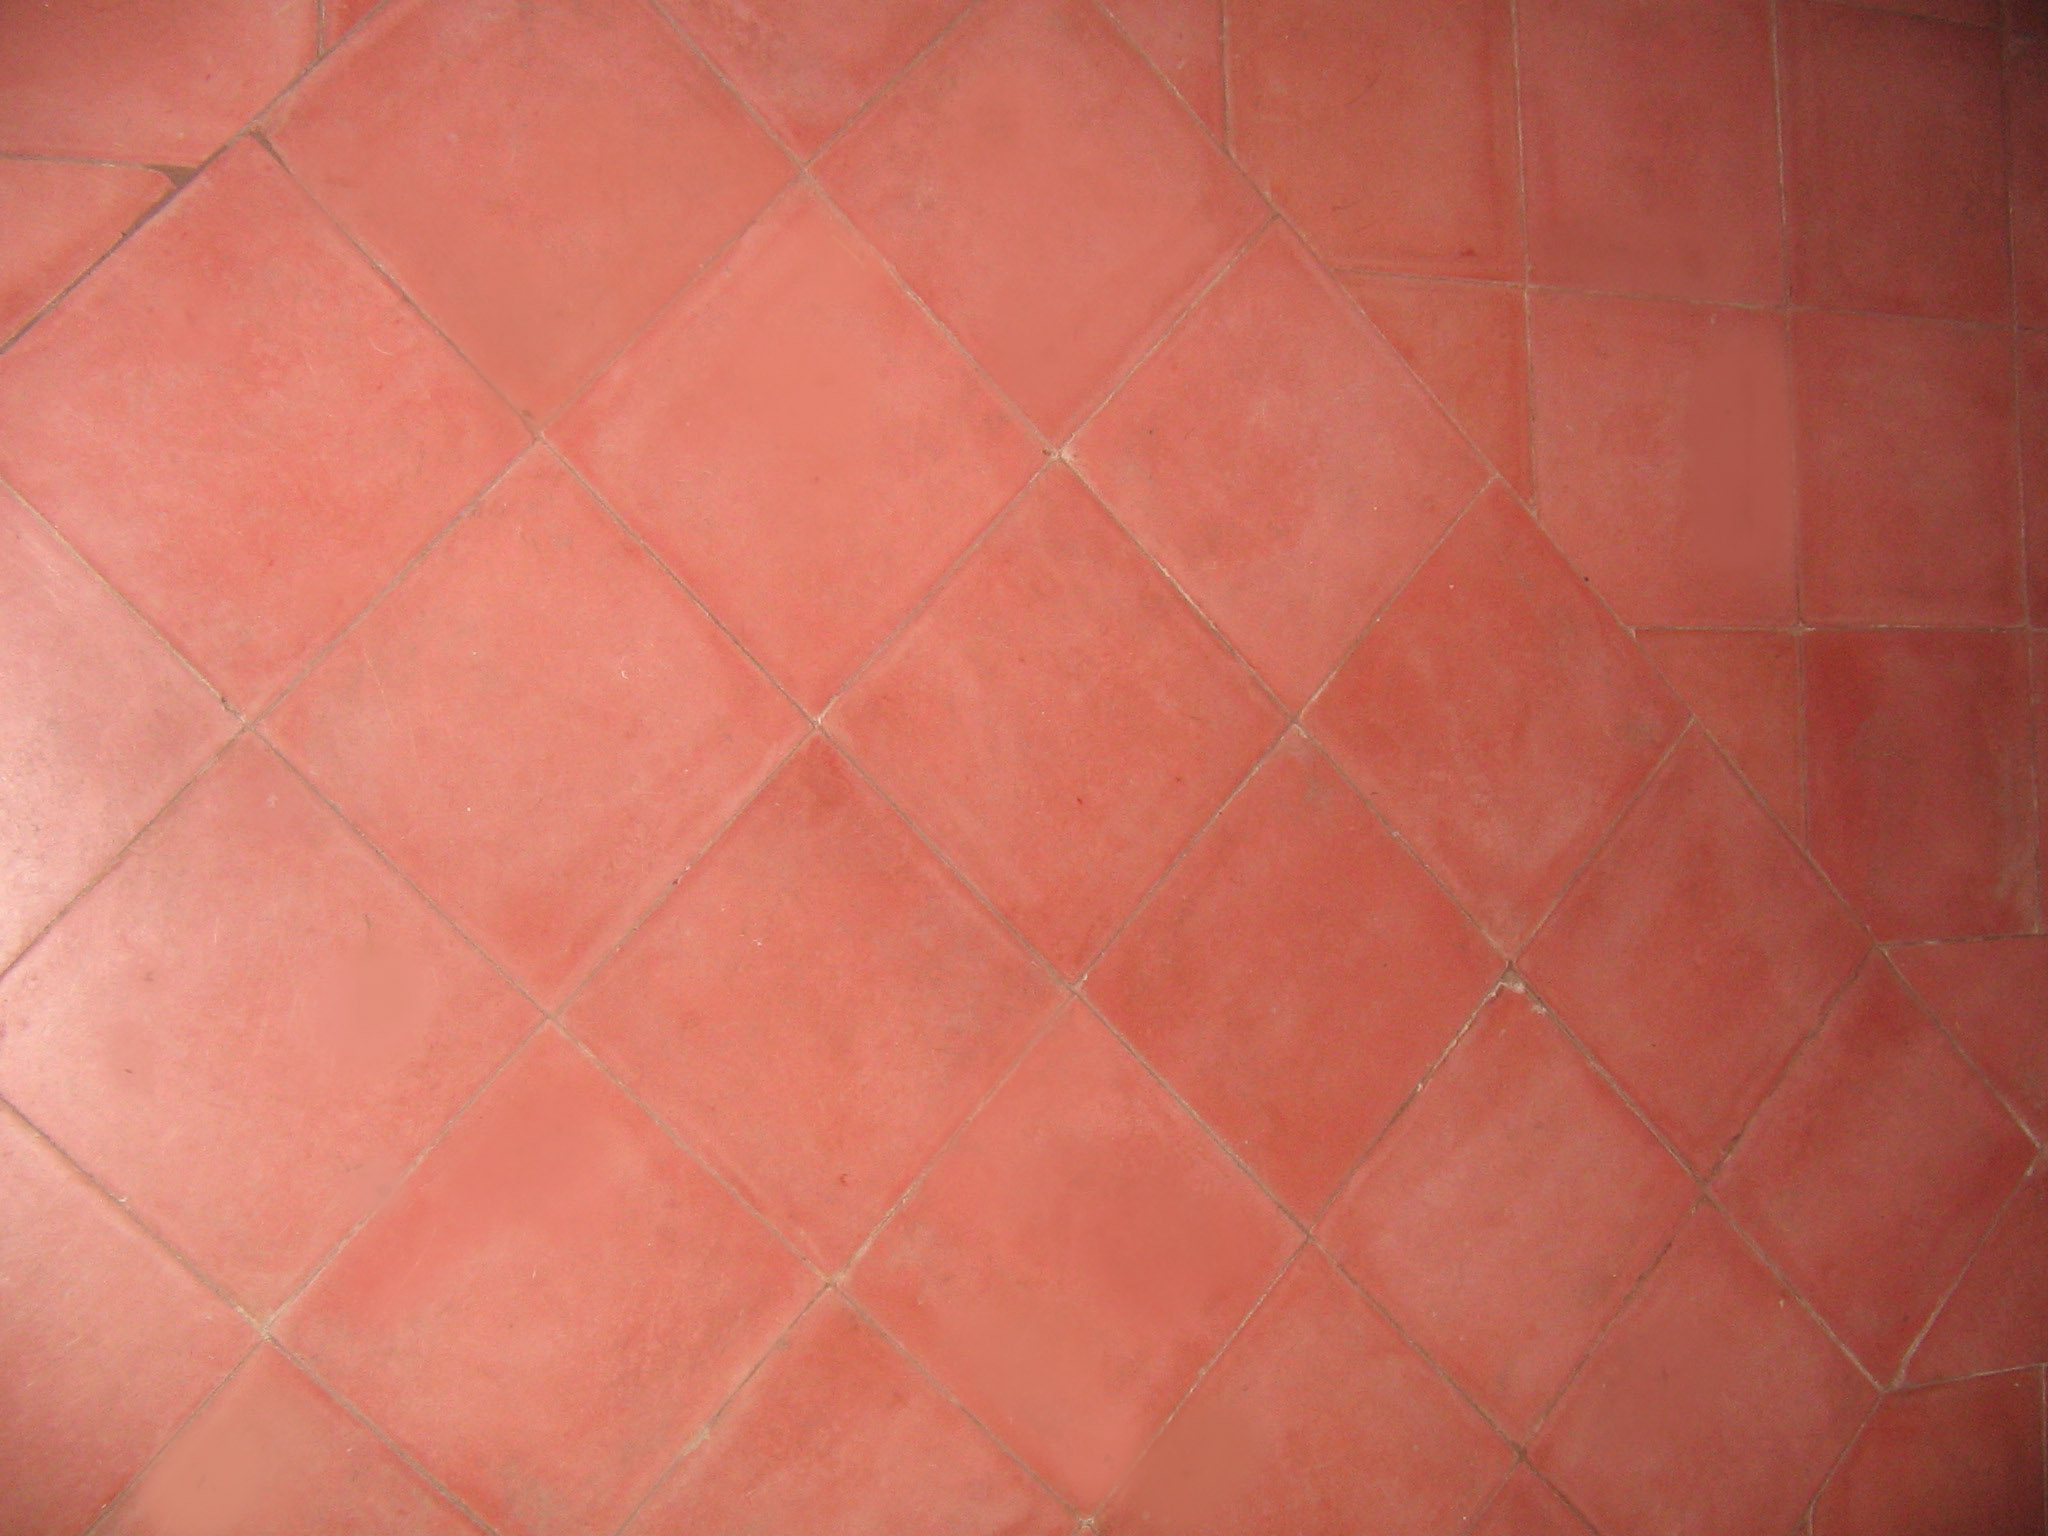 C25 Indian Red - moroccan cement tile